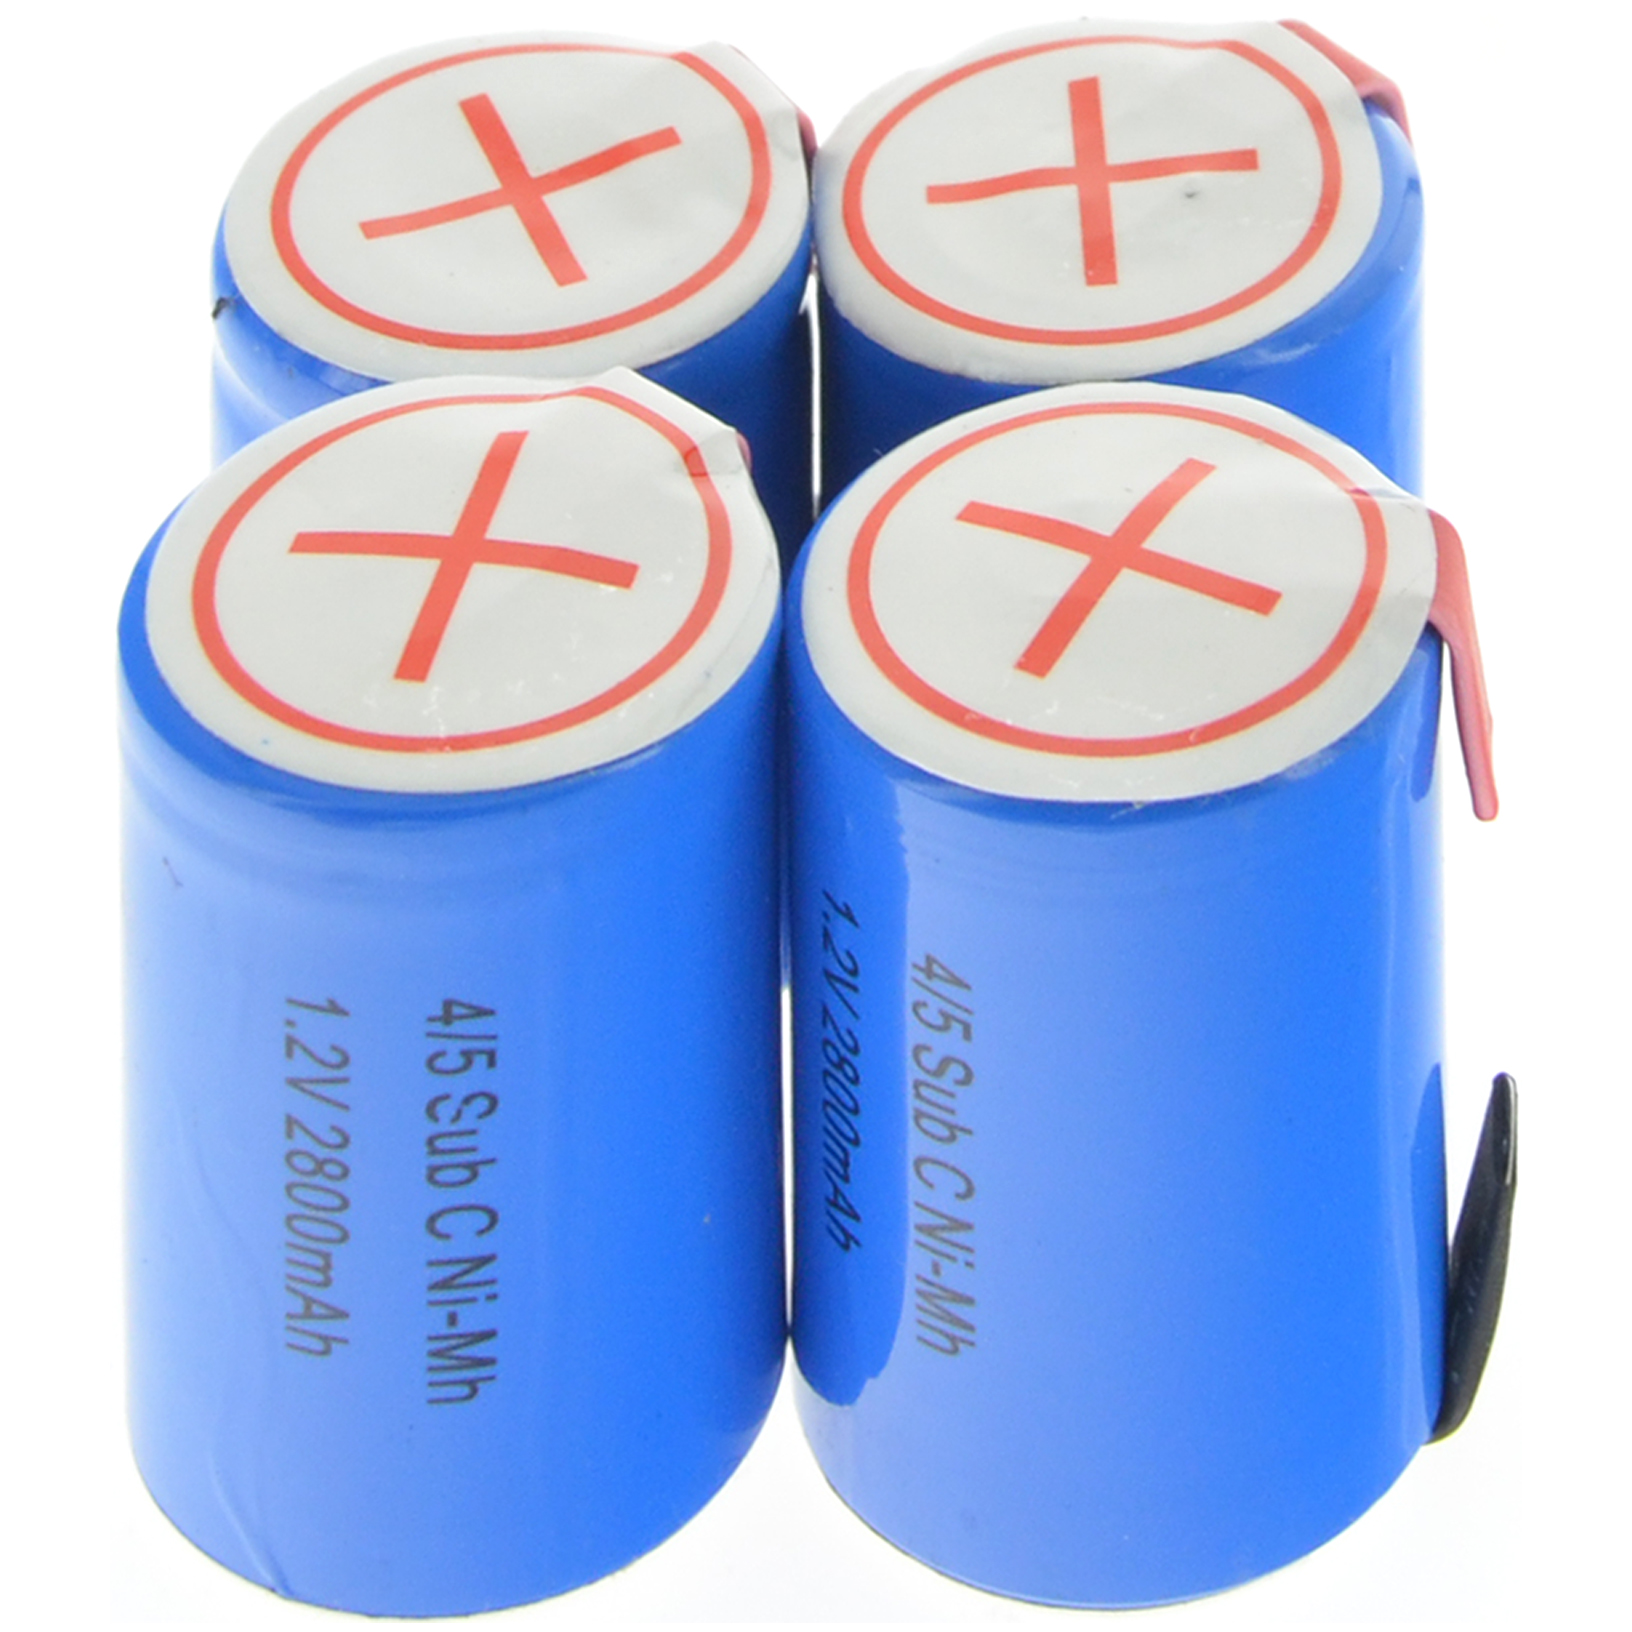 1/2/4/8/12/16/20pcs 4/5 SubC Sub C 2800mAh 12pcs <font><b>1.2V</b></font> Ni-Mh <font><b>Rechargeable</b></font> <font><b>Battery</b></font> Blue Cell with Tab image